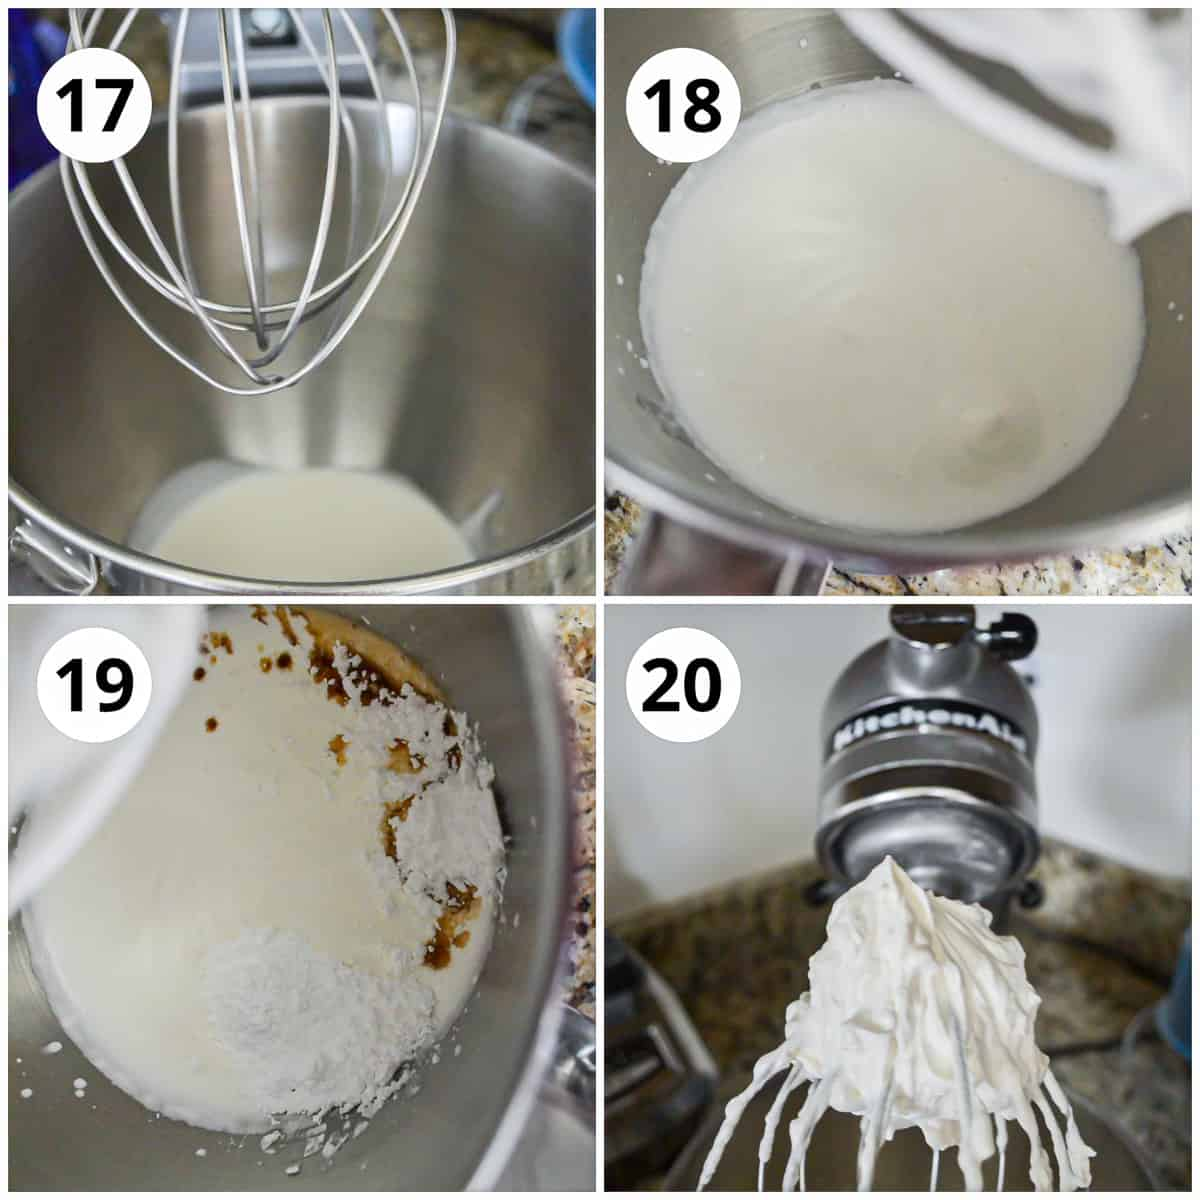 Four photos showing how to ake the whipped cream frosting